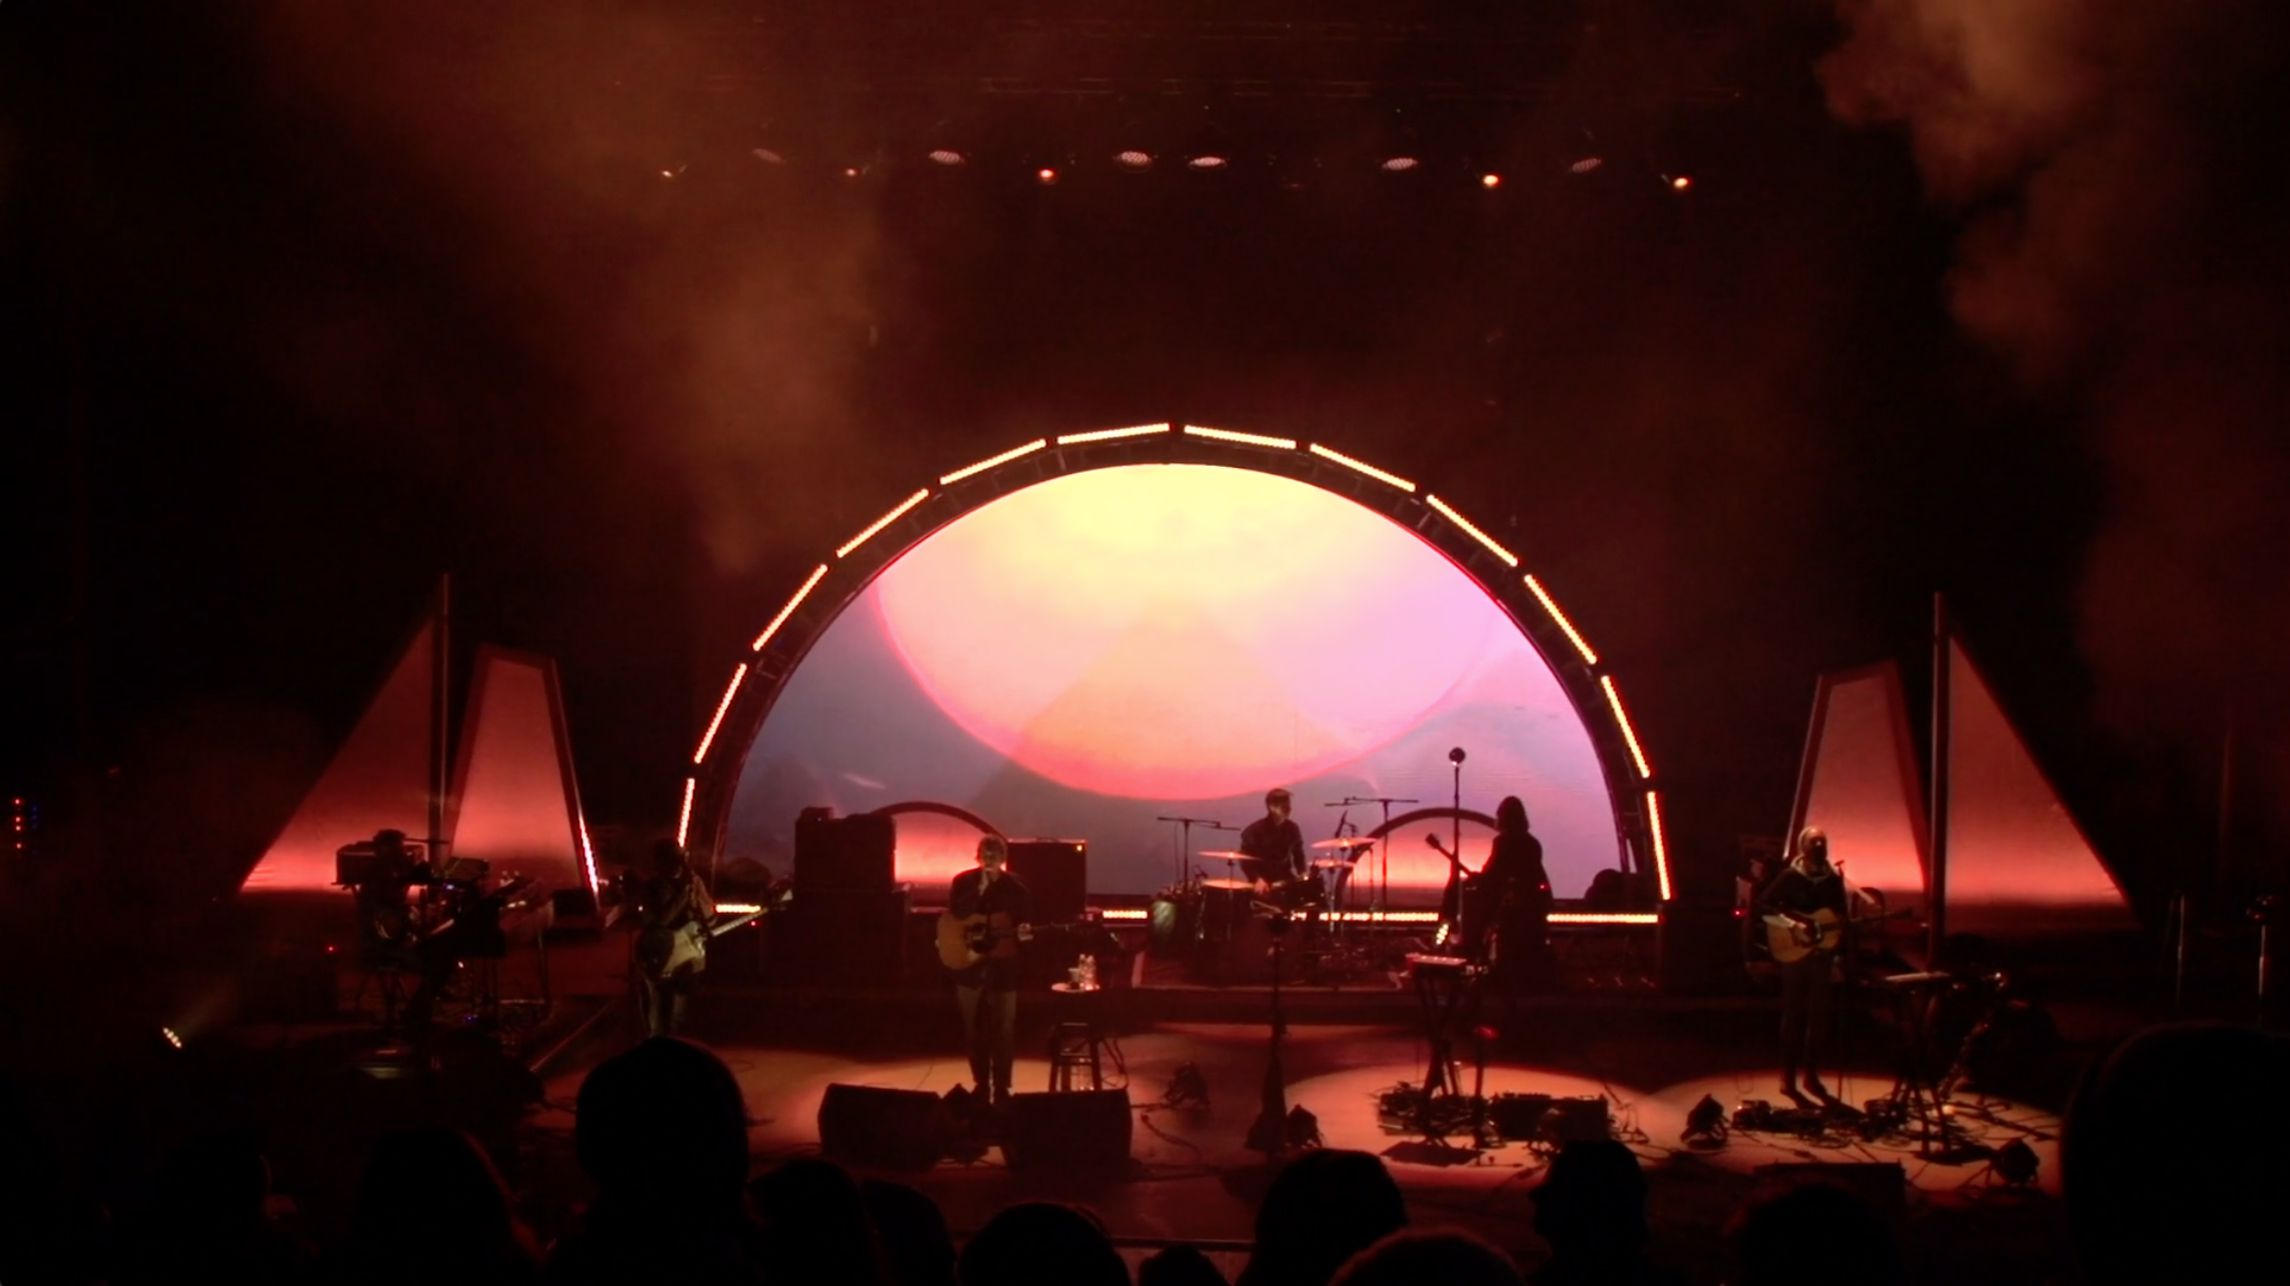 Fleet Foxes - Crack-Up Tour